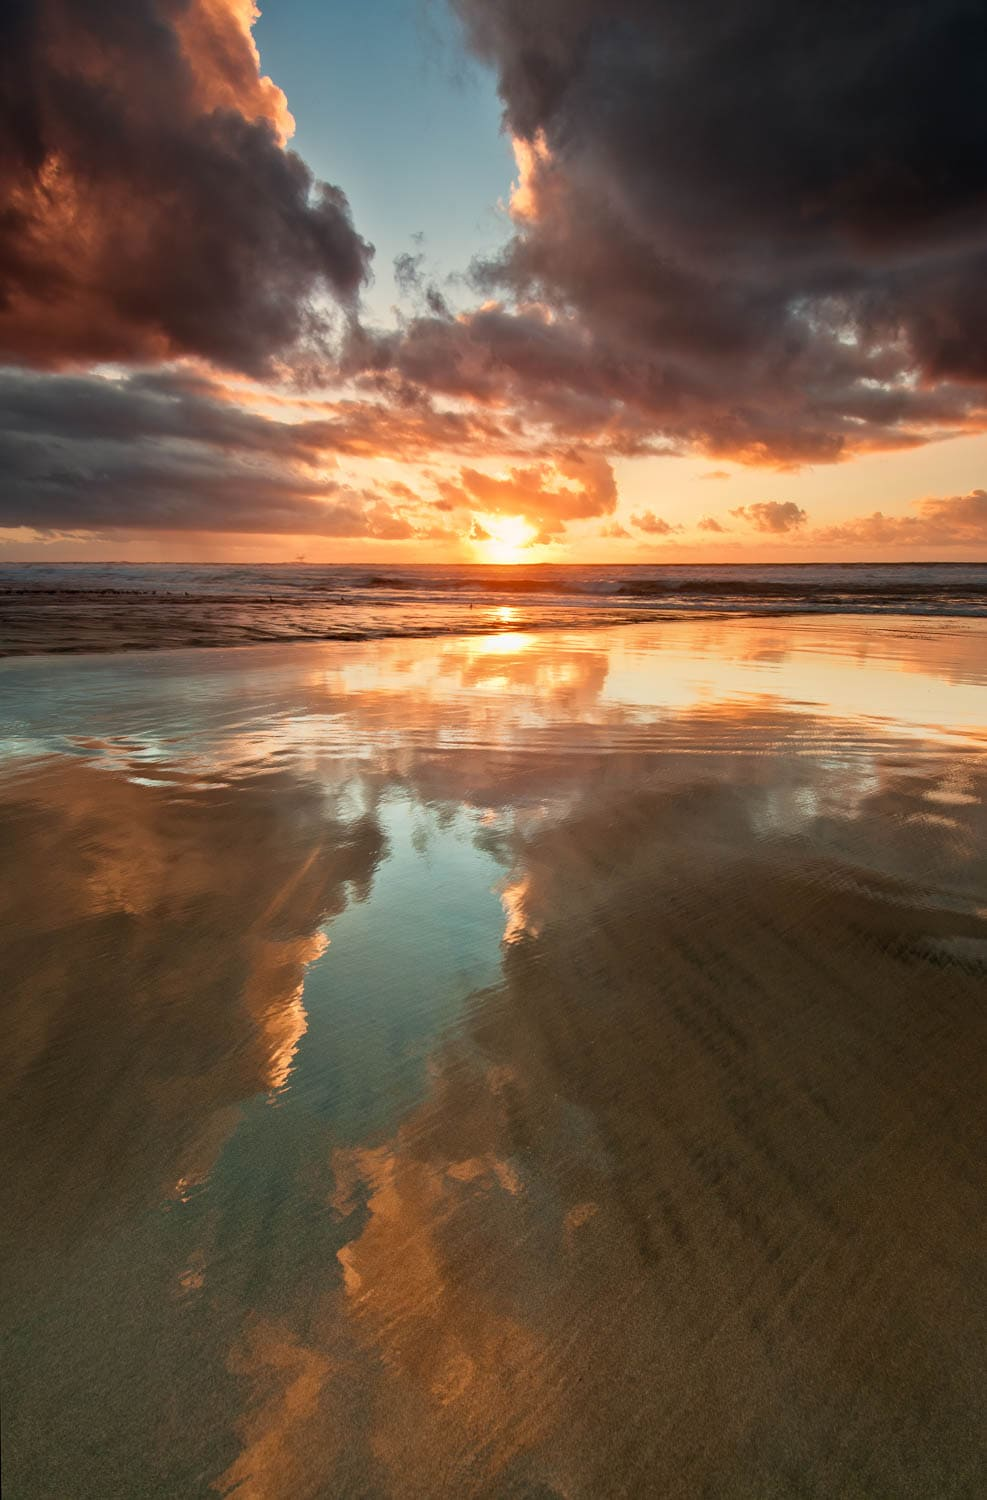 Glassy reflections on sandy beach with sunset sky